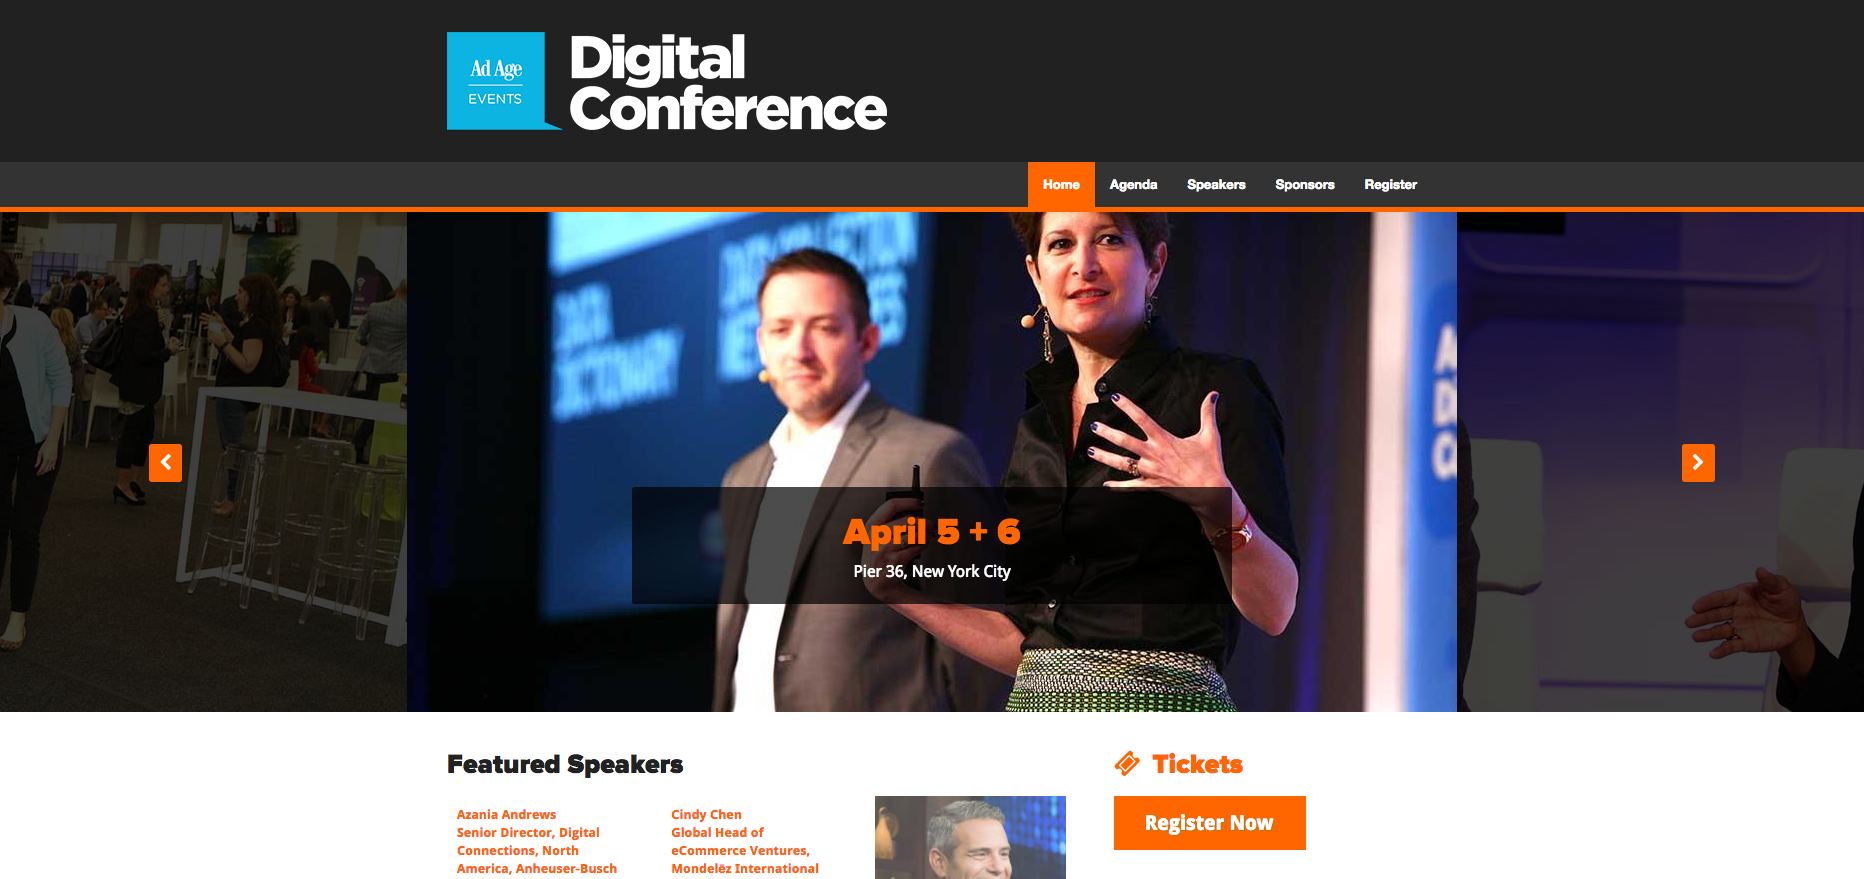 Ad_Age_Digital_Conference.png